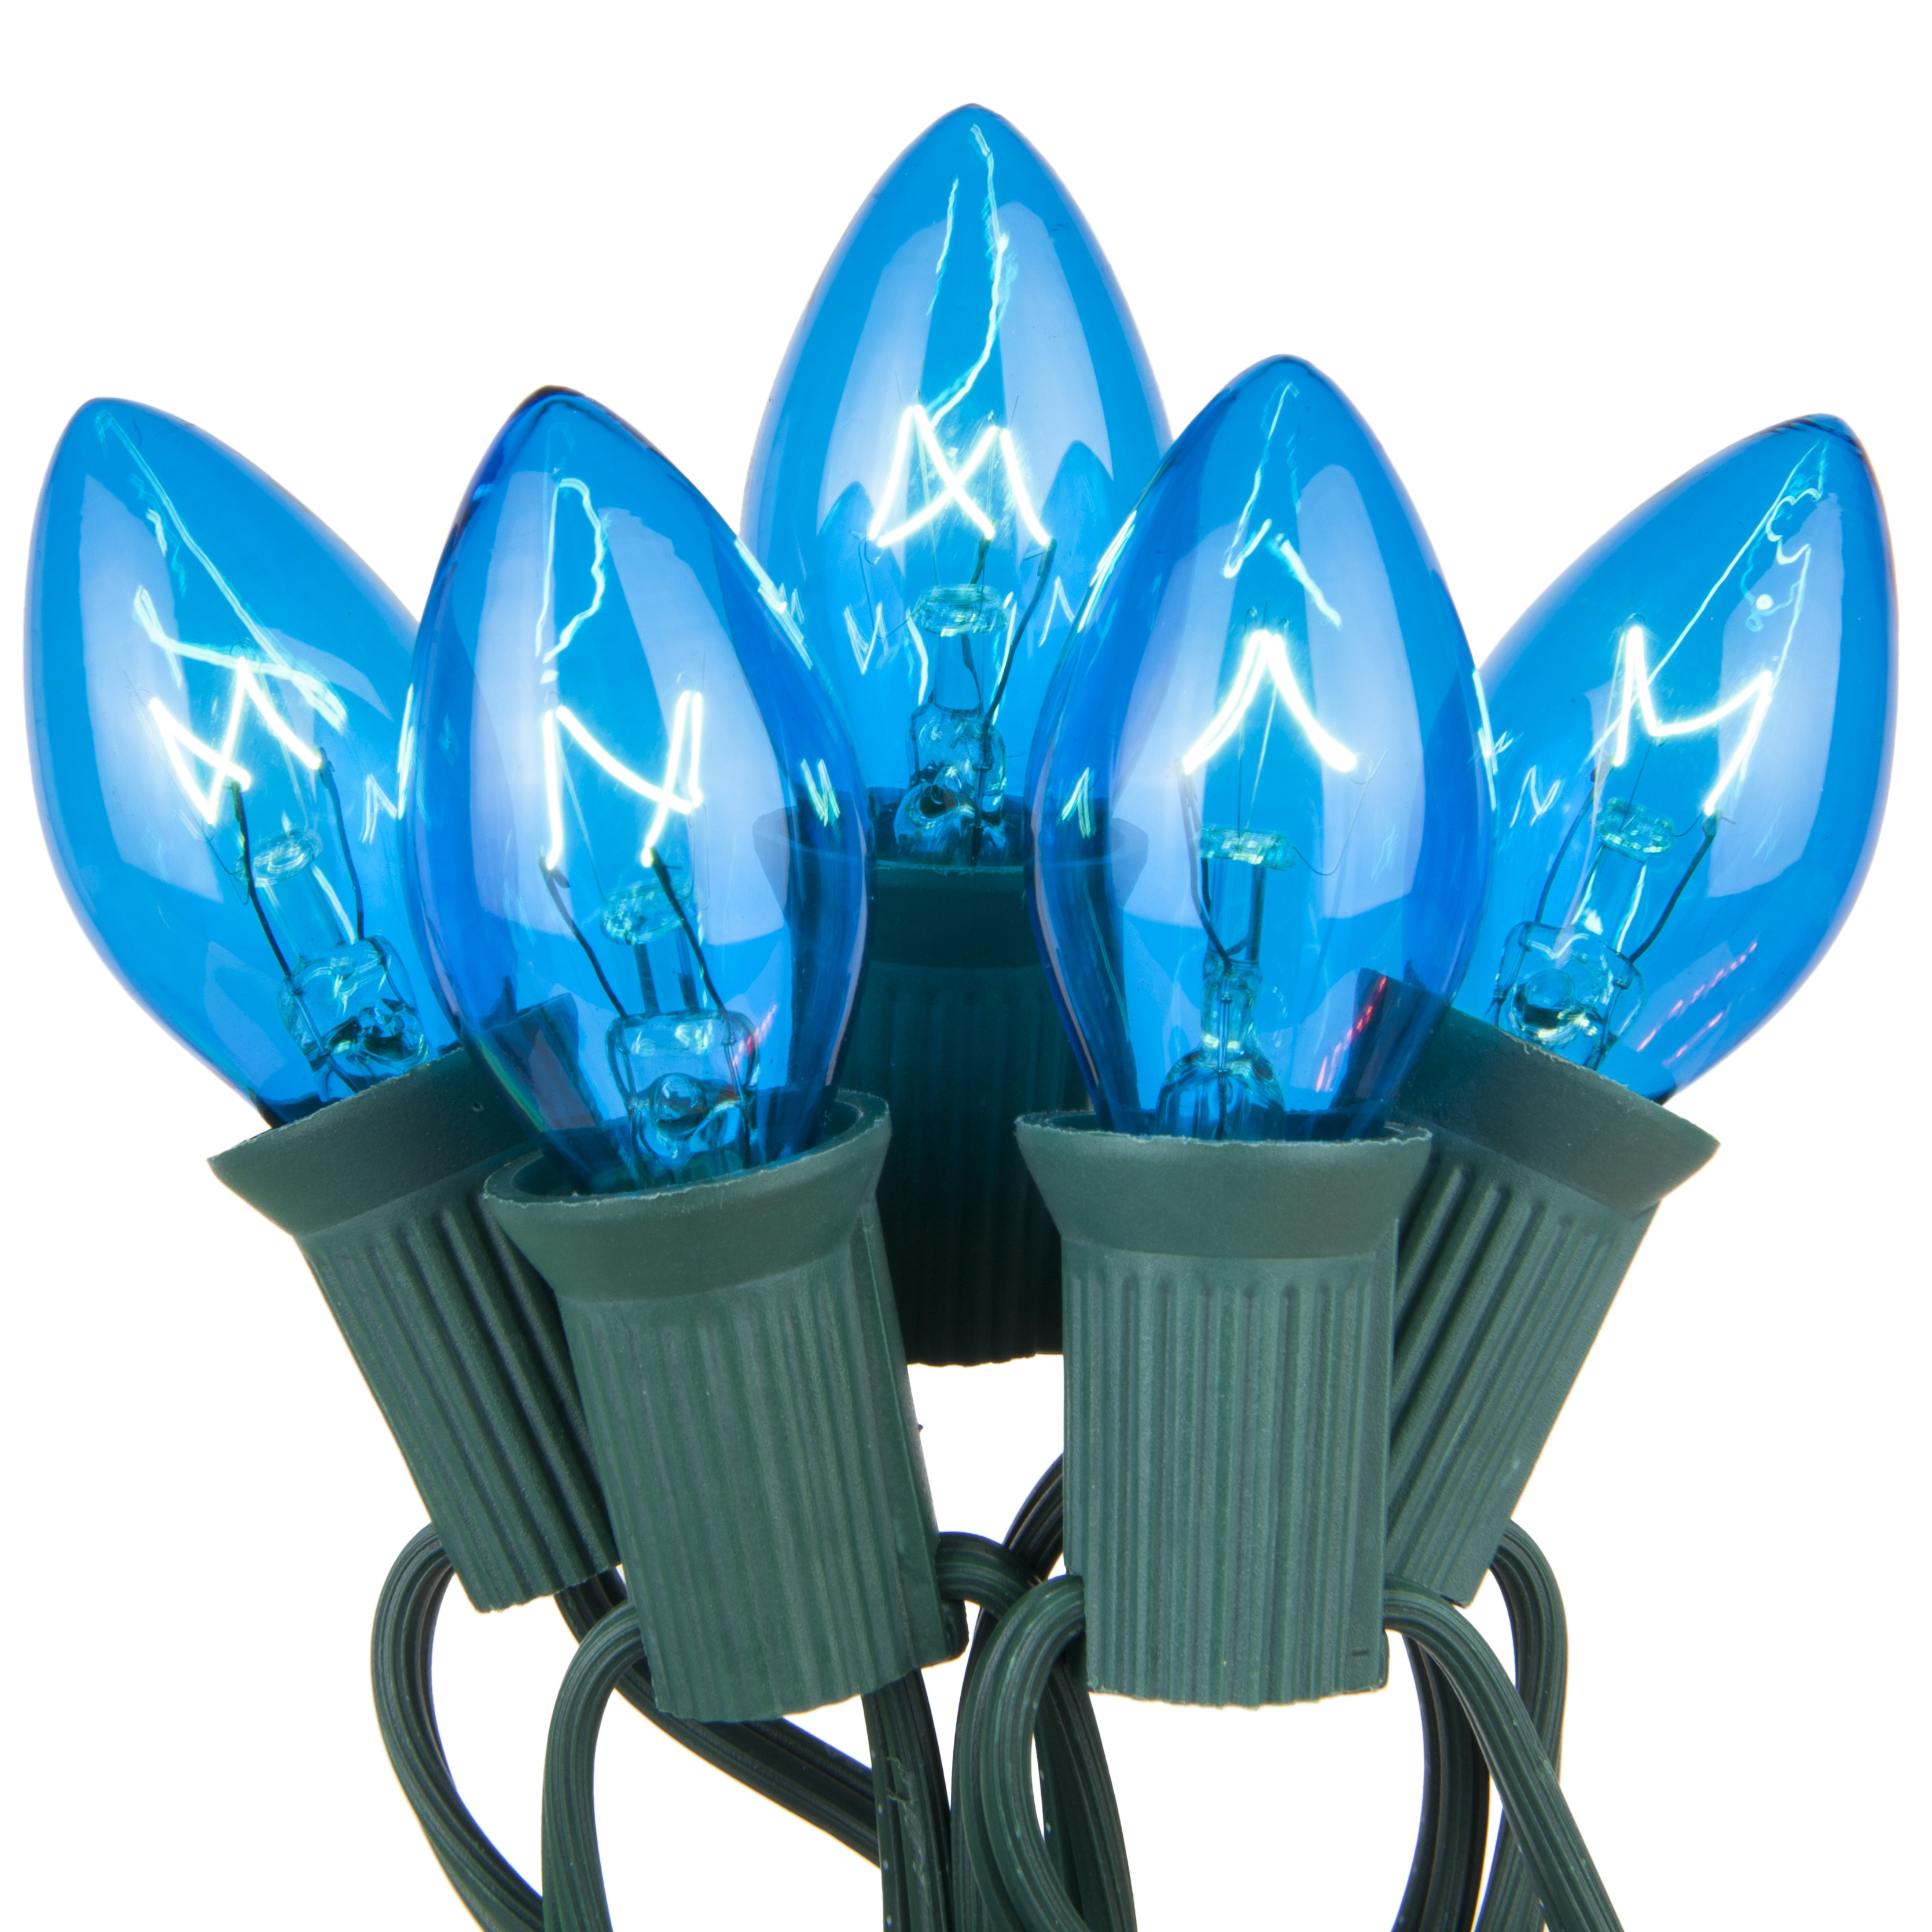 C7 Transparent Blue Incandescent Prelamped Lights